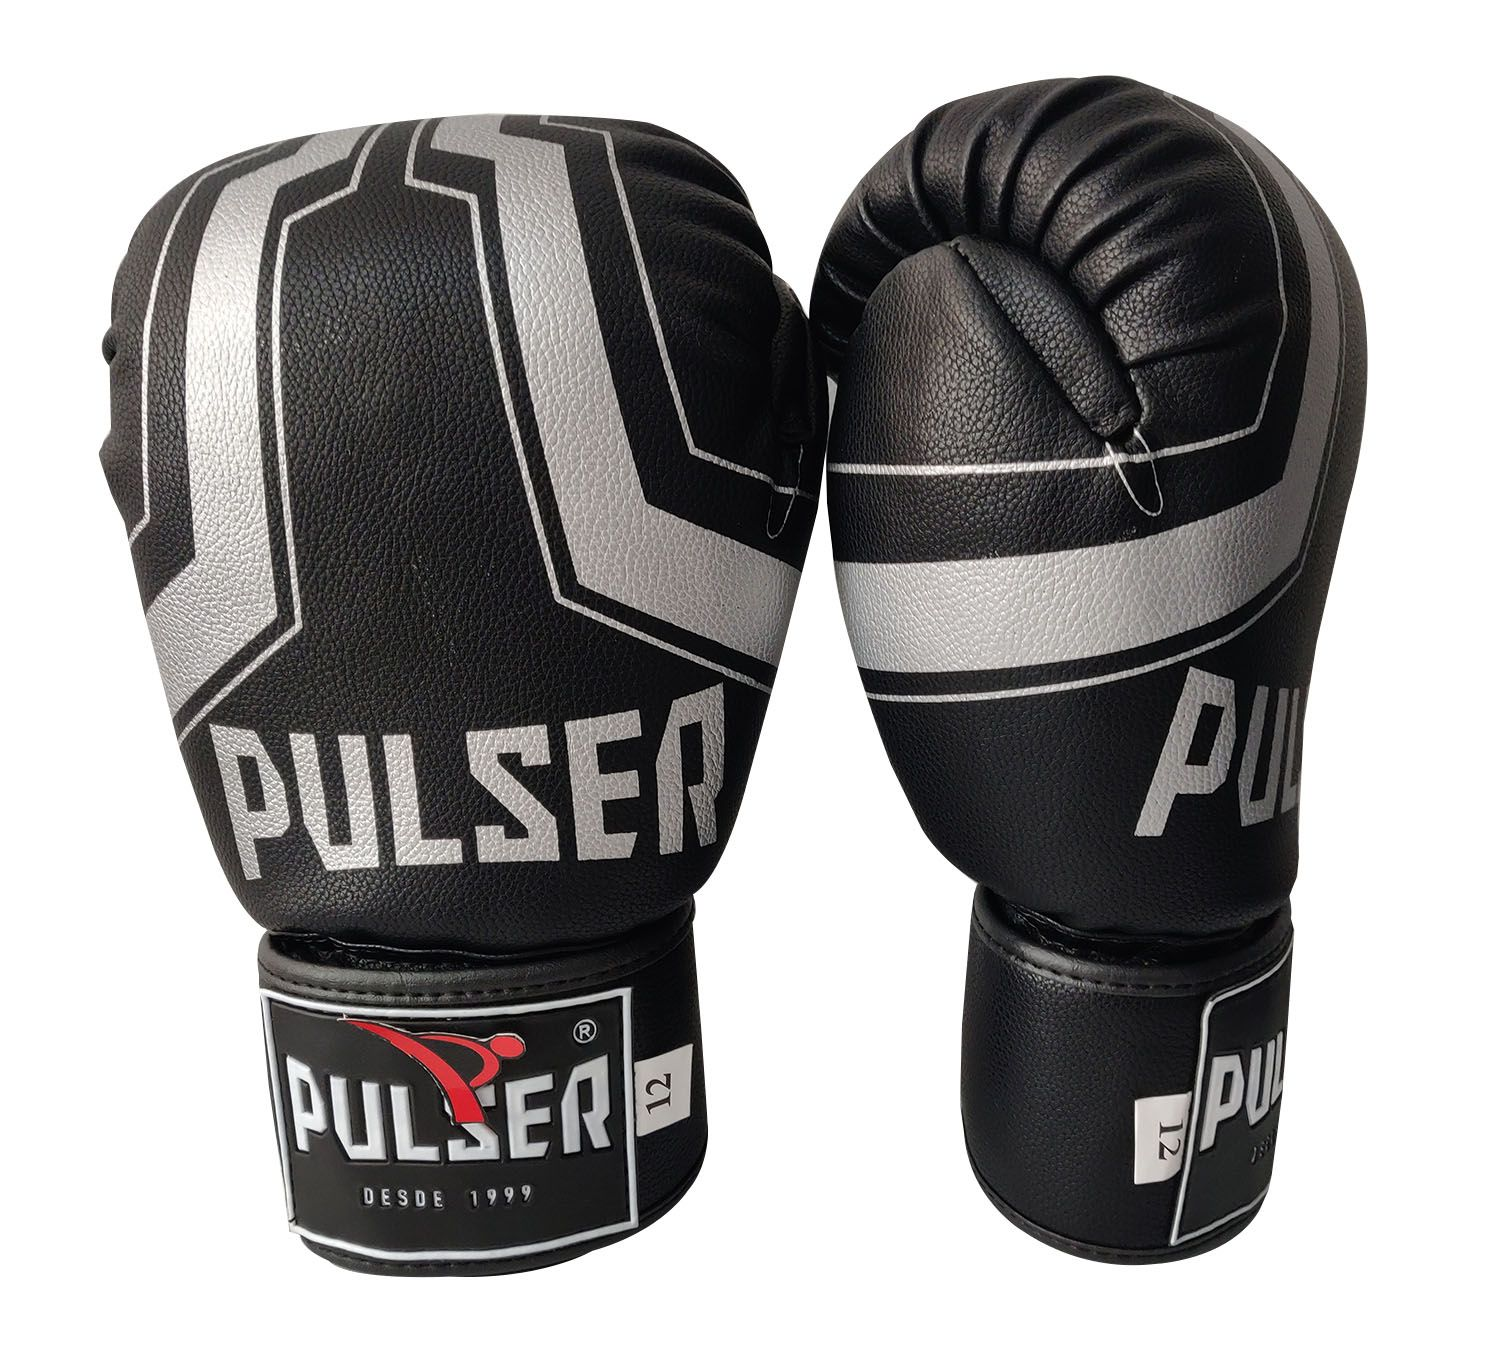 Kit de Boxe / Muay Thai 16oz - Preto Iron - Pulser  - PRALUTA SHOP